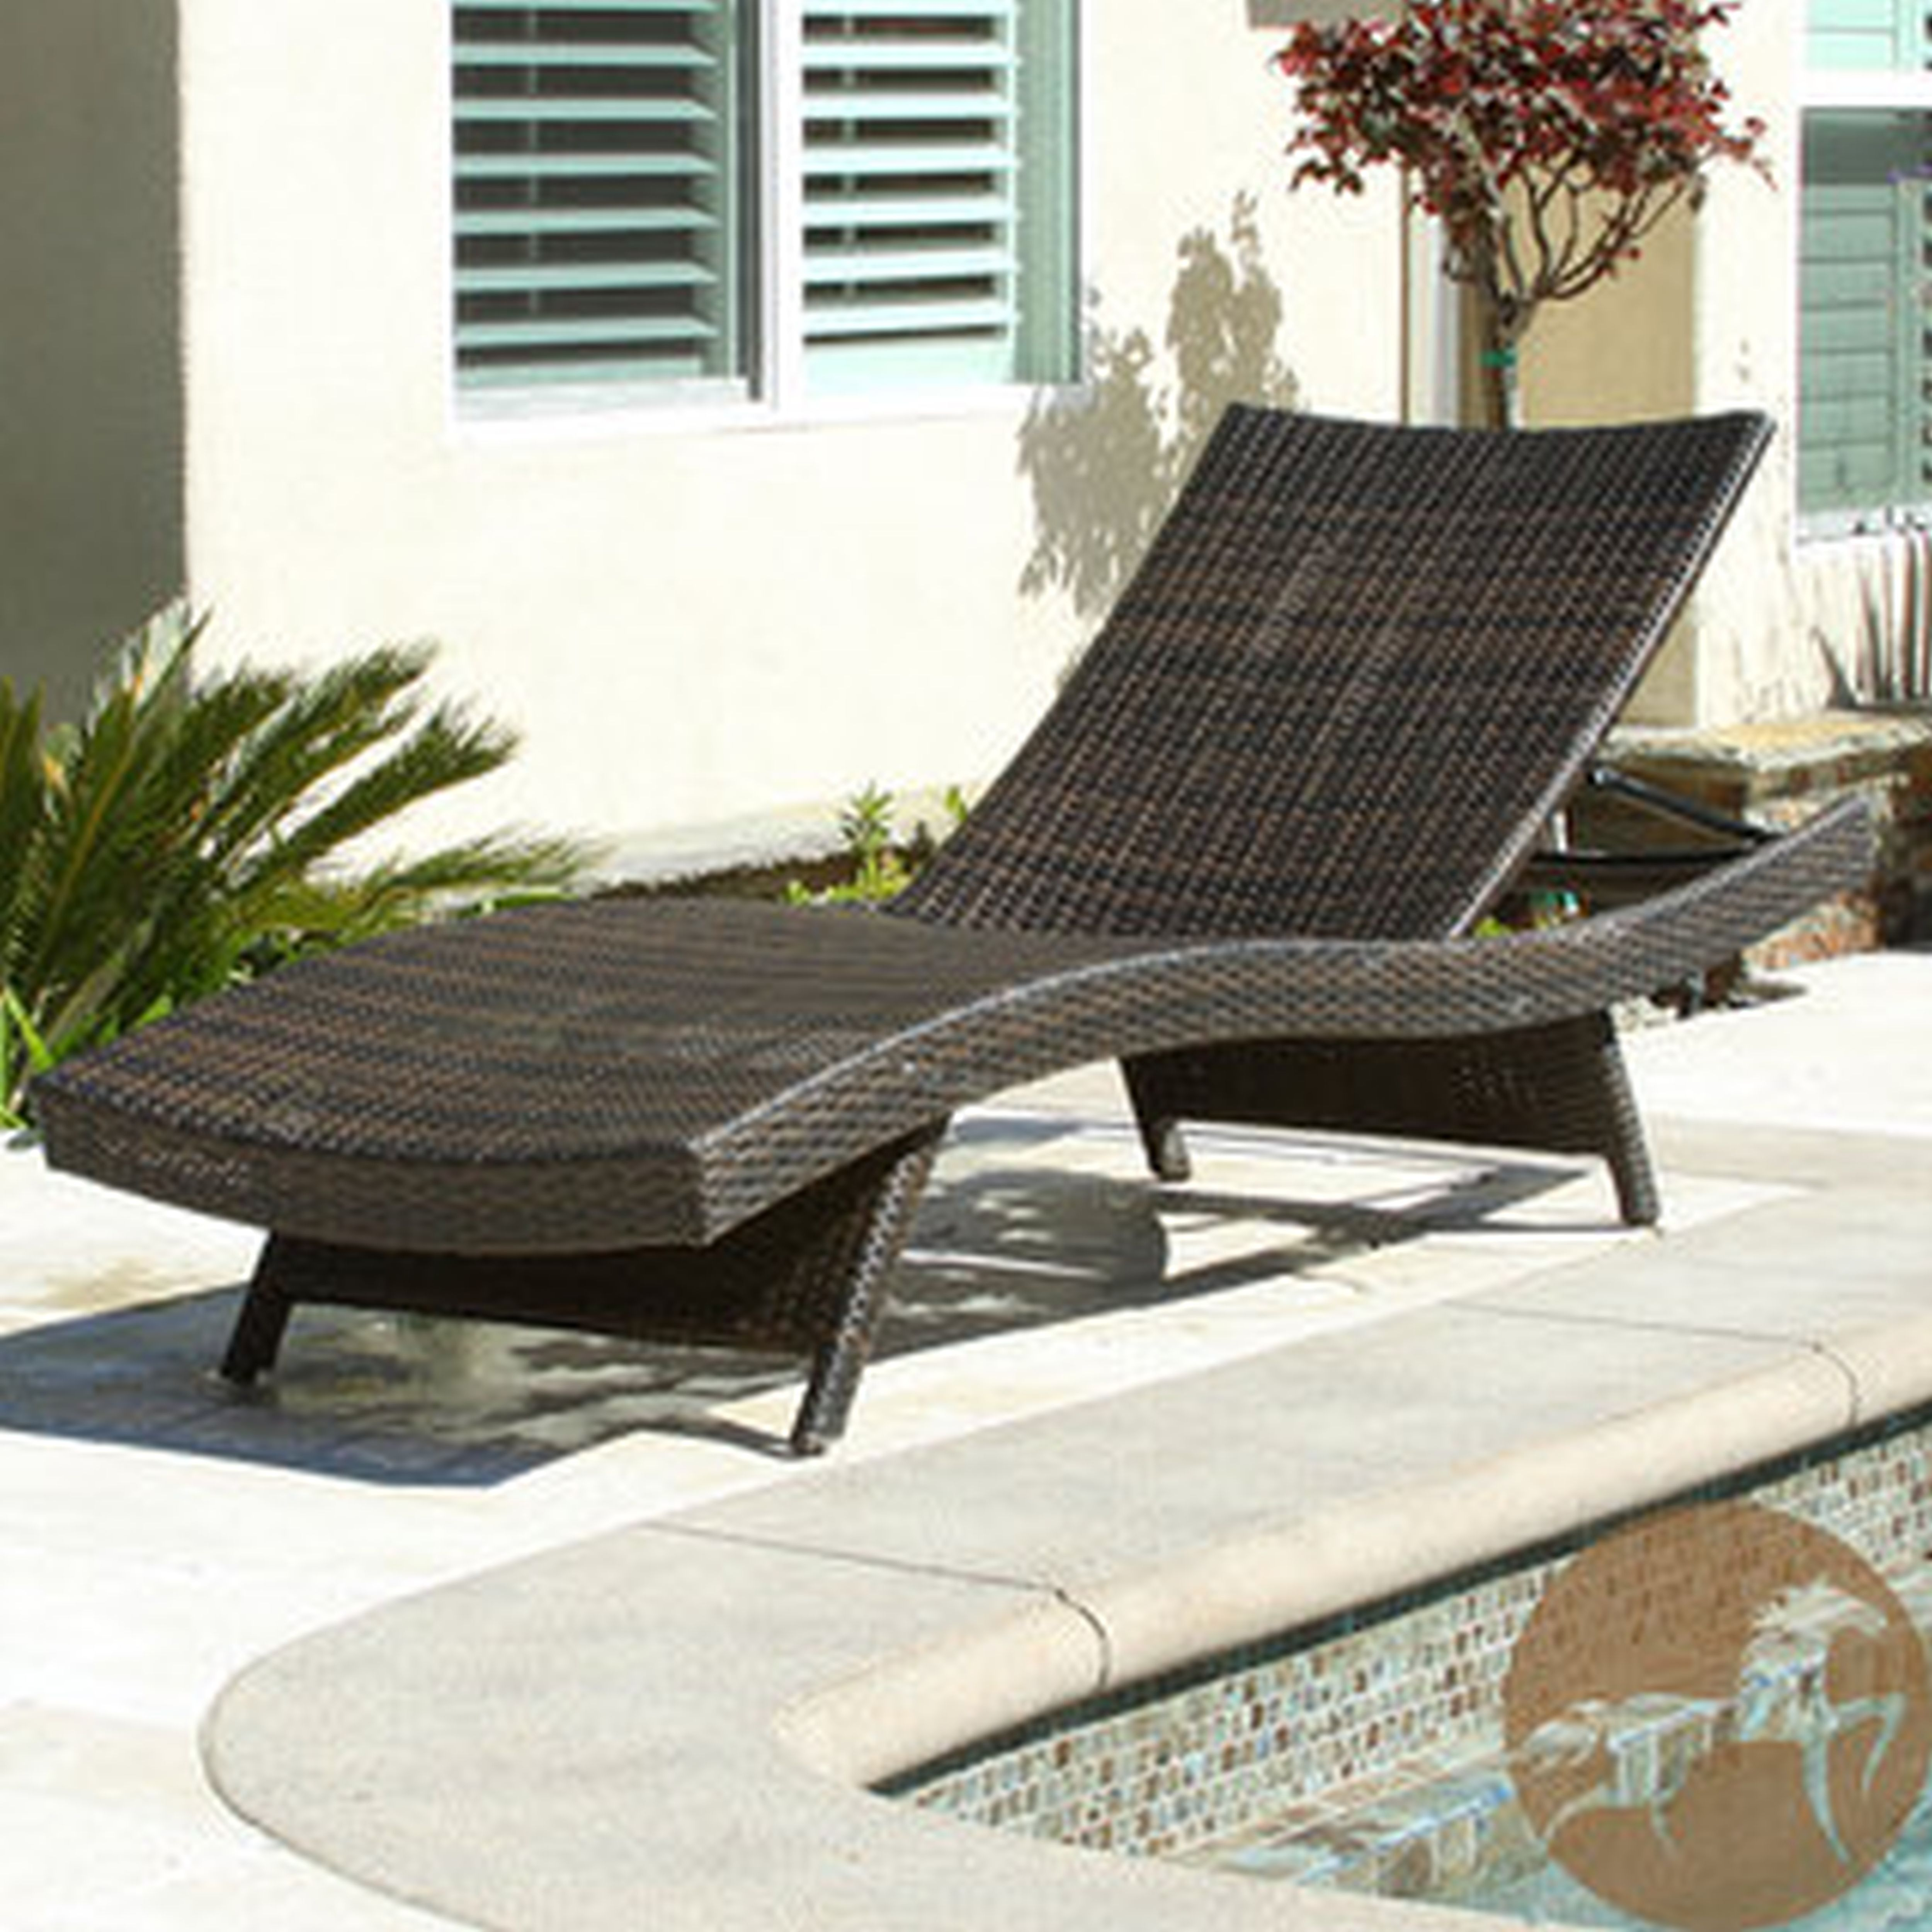 Lounge Chair Patio Patio Chaise Lounge As The Must Have Furniture In Your